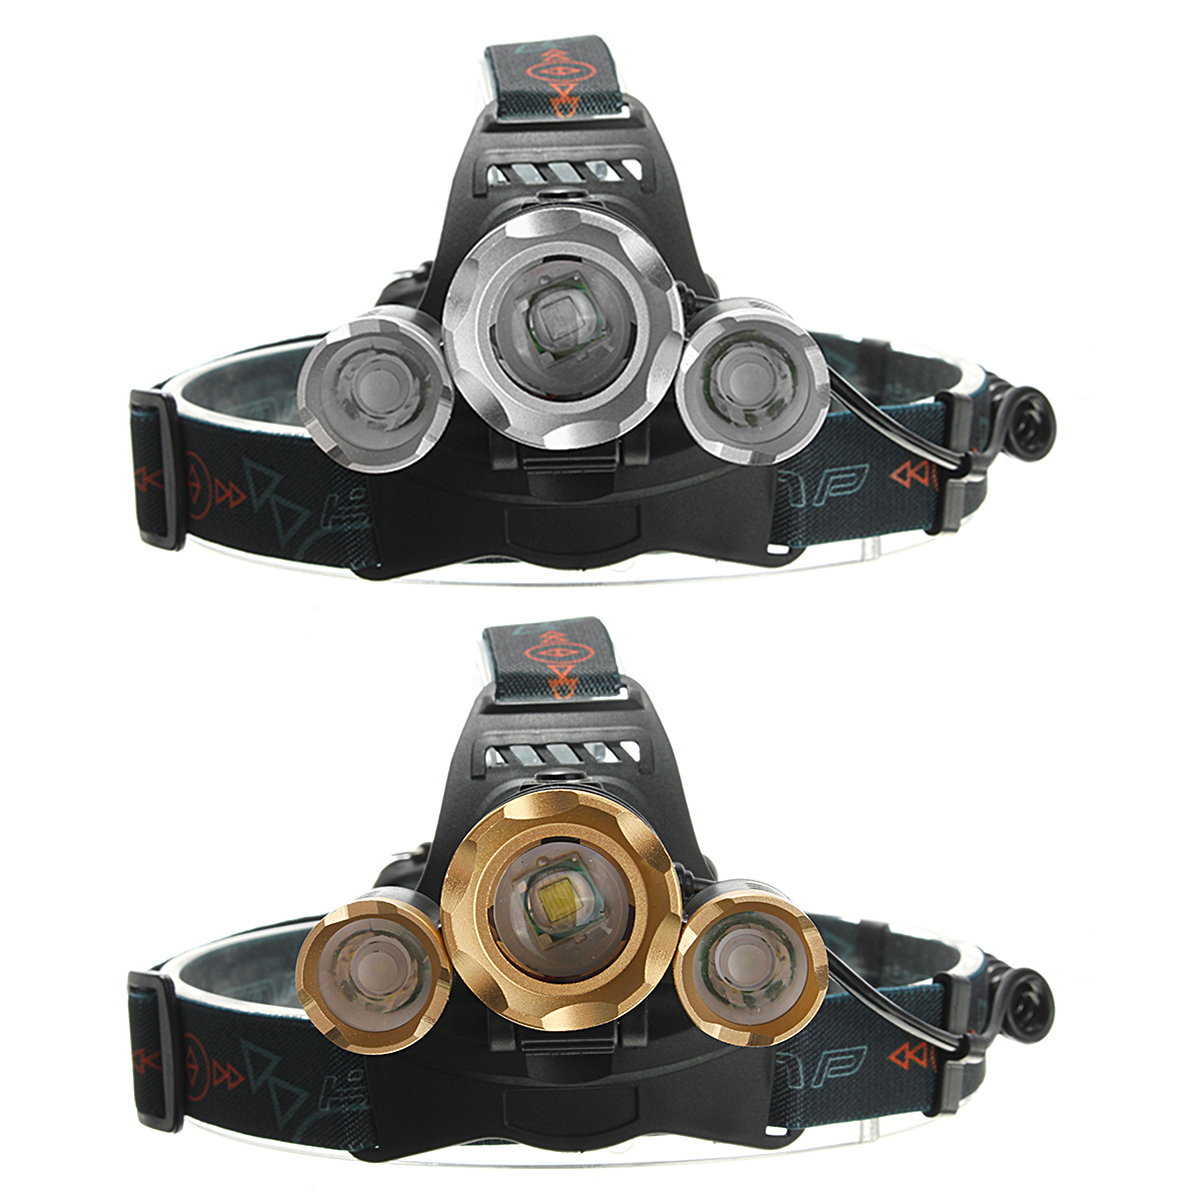 6000Lm 3xT6 Camping &amp LED Aluminum Zoomable Rechargeable Headlamp Headlight Flashlight Torch Waterproof For Hiking Camping Fishing